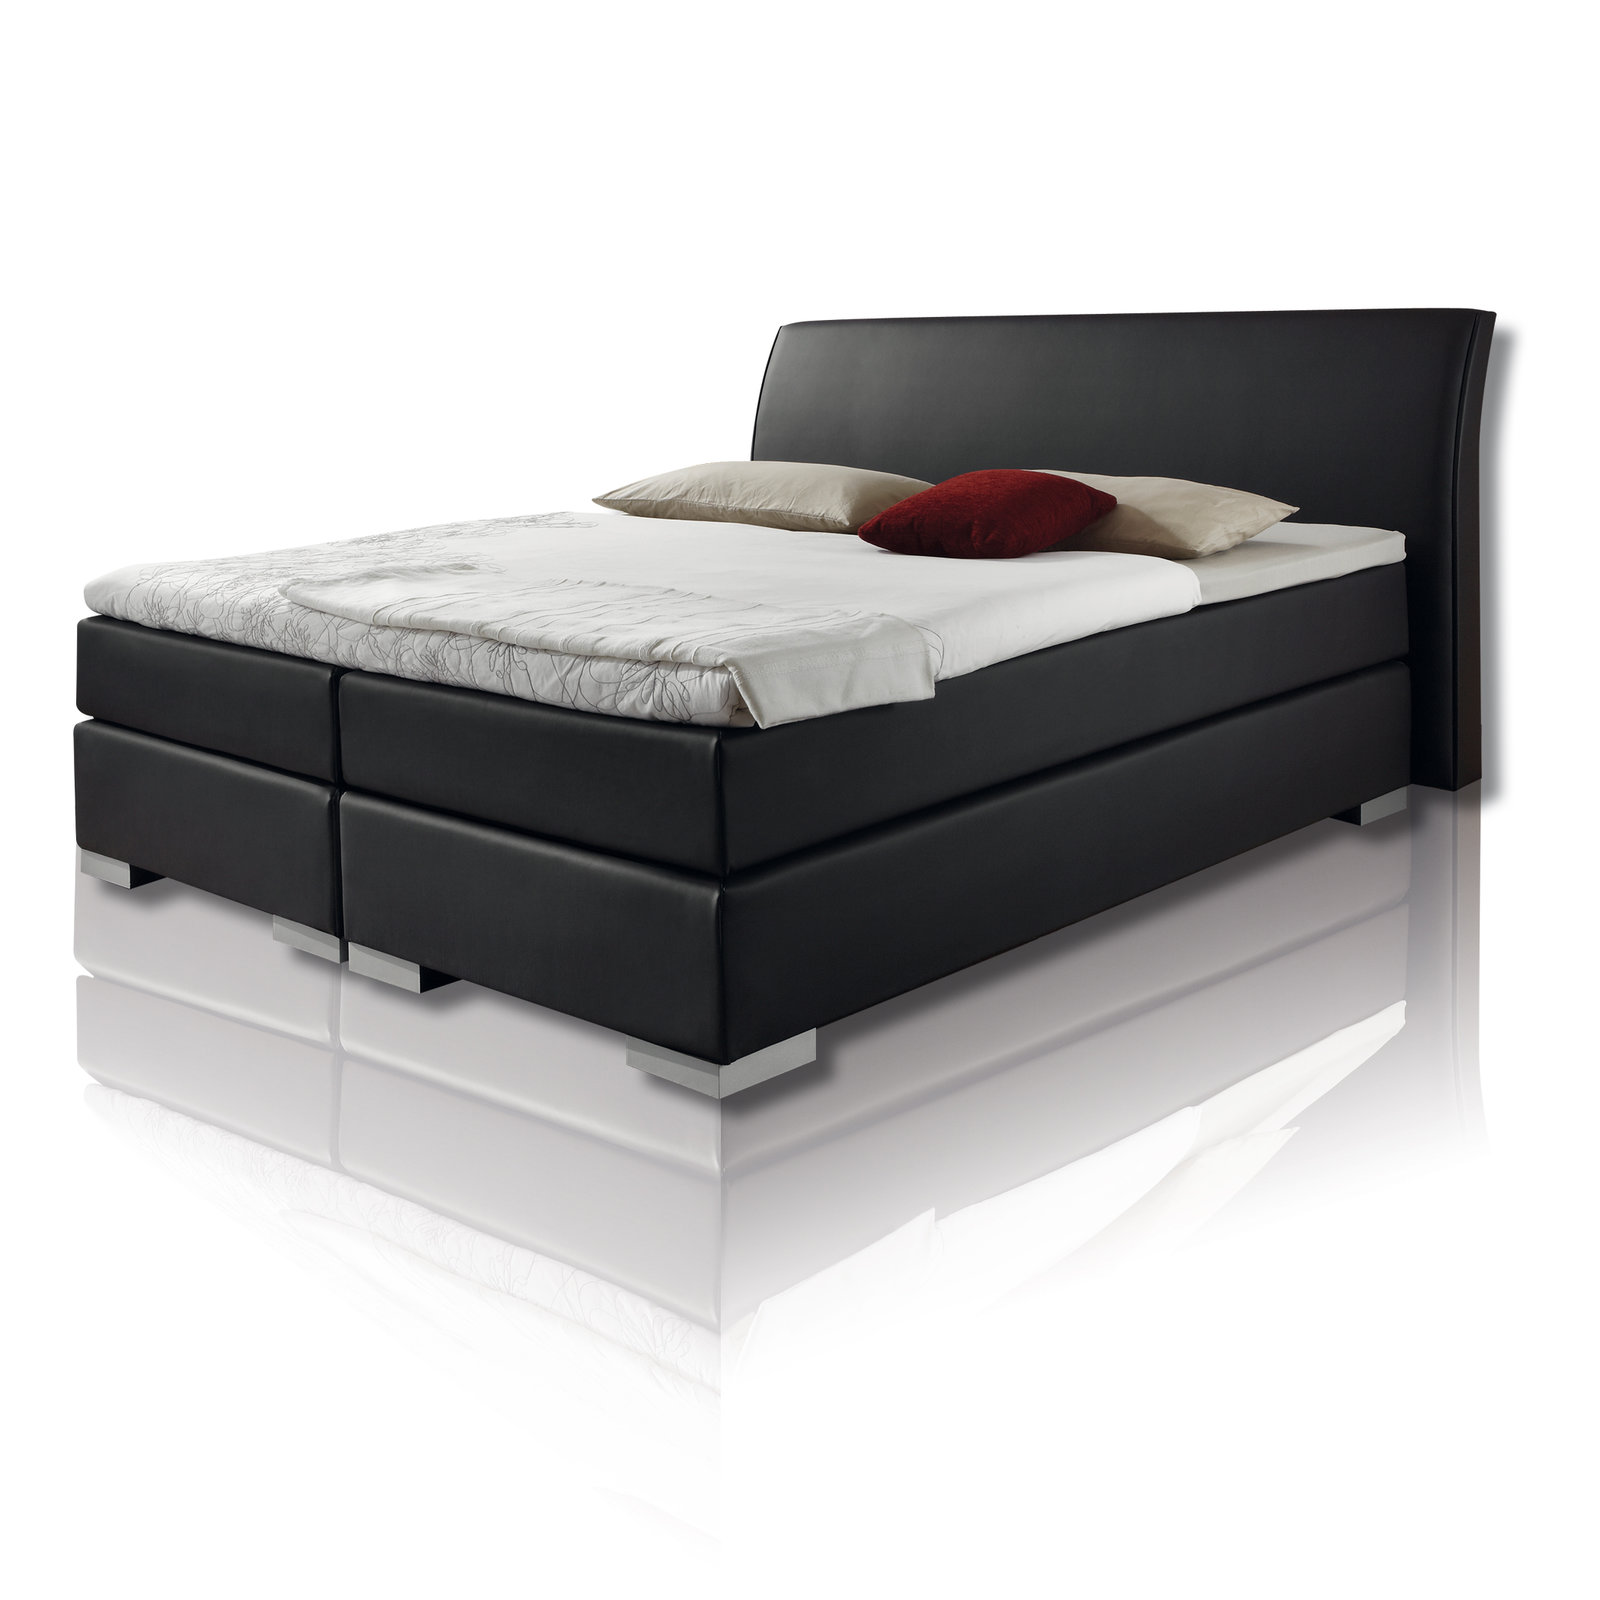 26 sparen boxspringbett prisma 180x200cm nur 666 00. Black Bedroom Furniture Sets. Home Design Ideas